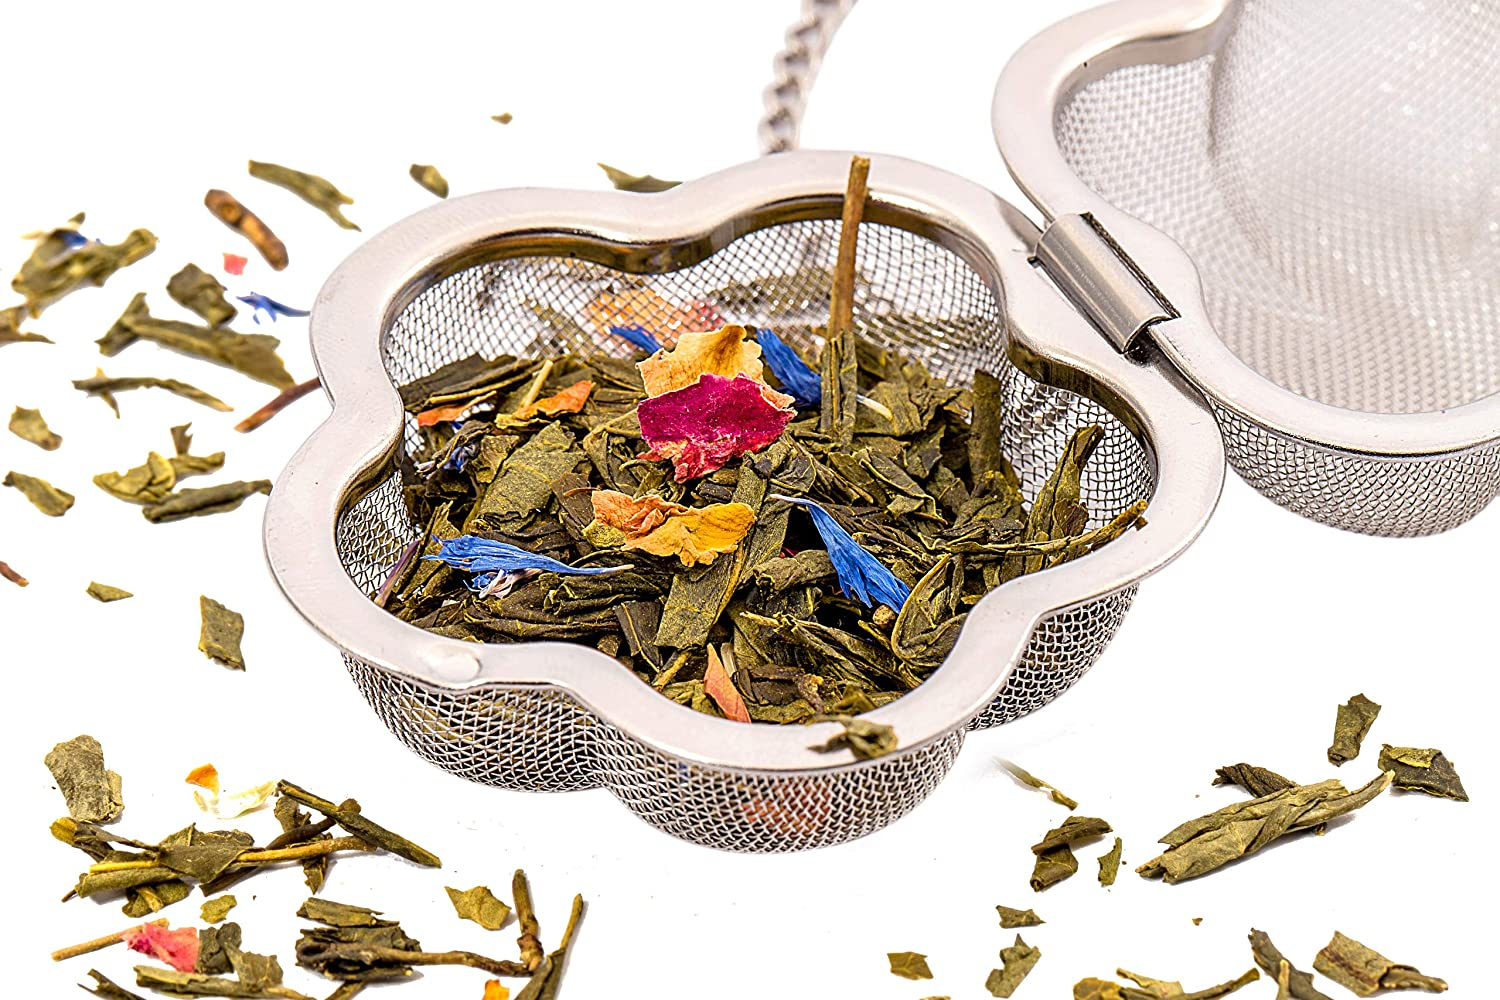 Unique Flower Shape Perfect for all Occasions Cute Tea Gift Set Reusable Tea Infuser Ball for Loose Leaf Tea Fine Mesh Stainless Steel Single Serve Strainer and Steeper with Charming Drip Tray